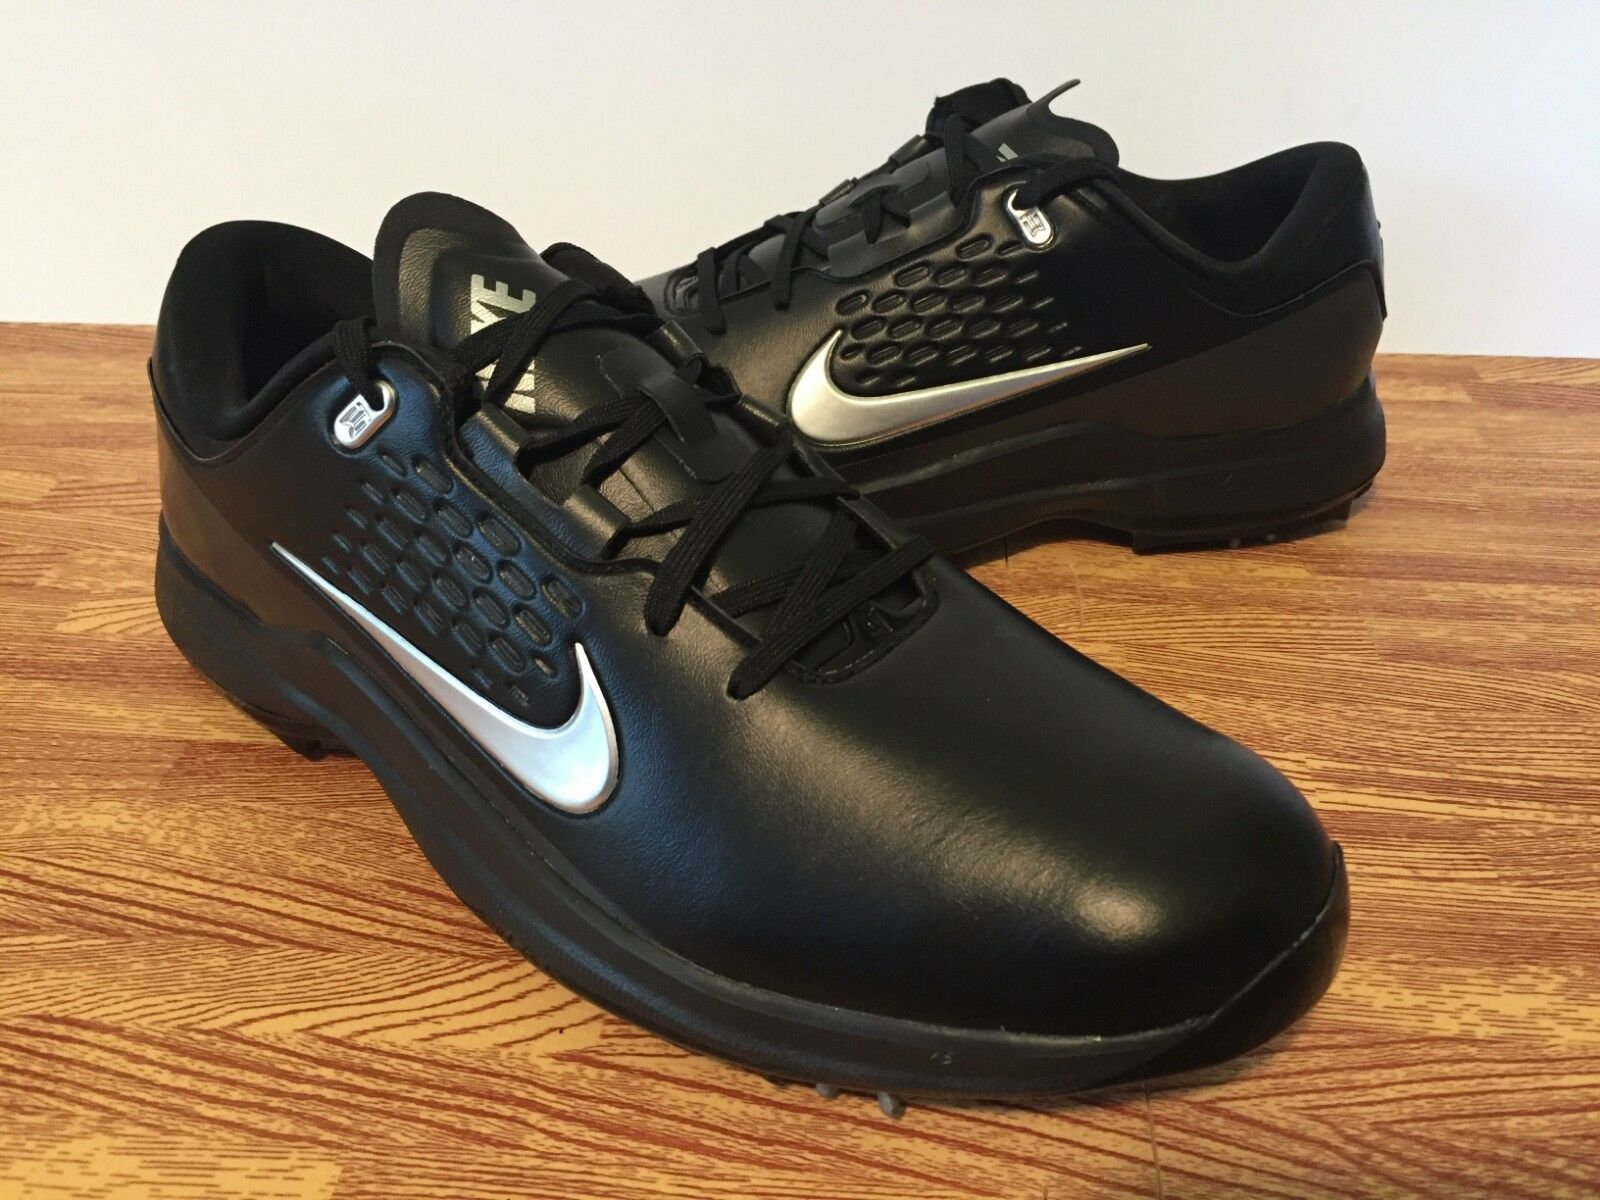 01779d9b998c Nike Golf Air Zoom Tw71 Tiger Woods Shoes Aa1990-002 Black Silver ...